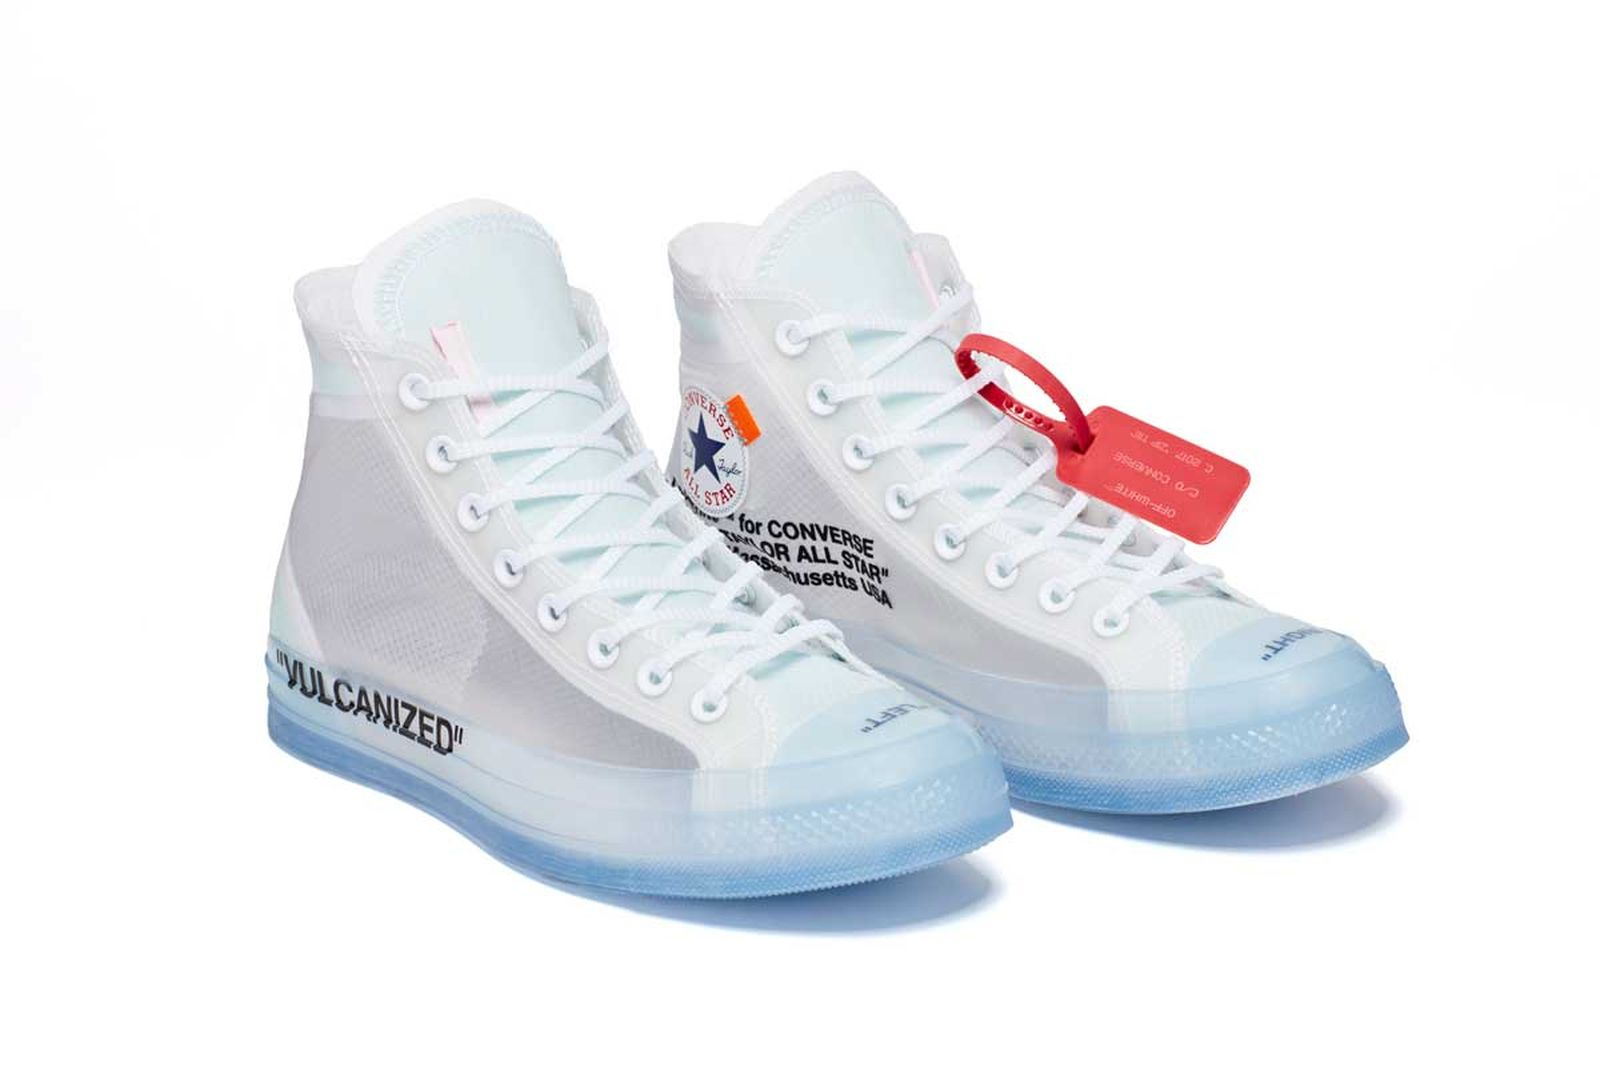 OFF-WHITE x Converse Chuck Taylor: Release Date, Price & More